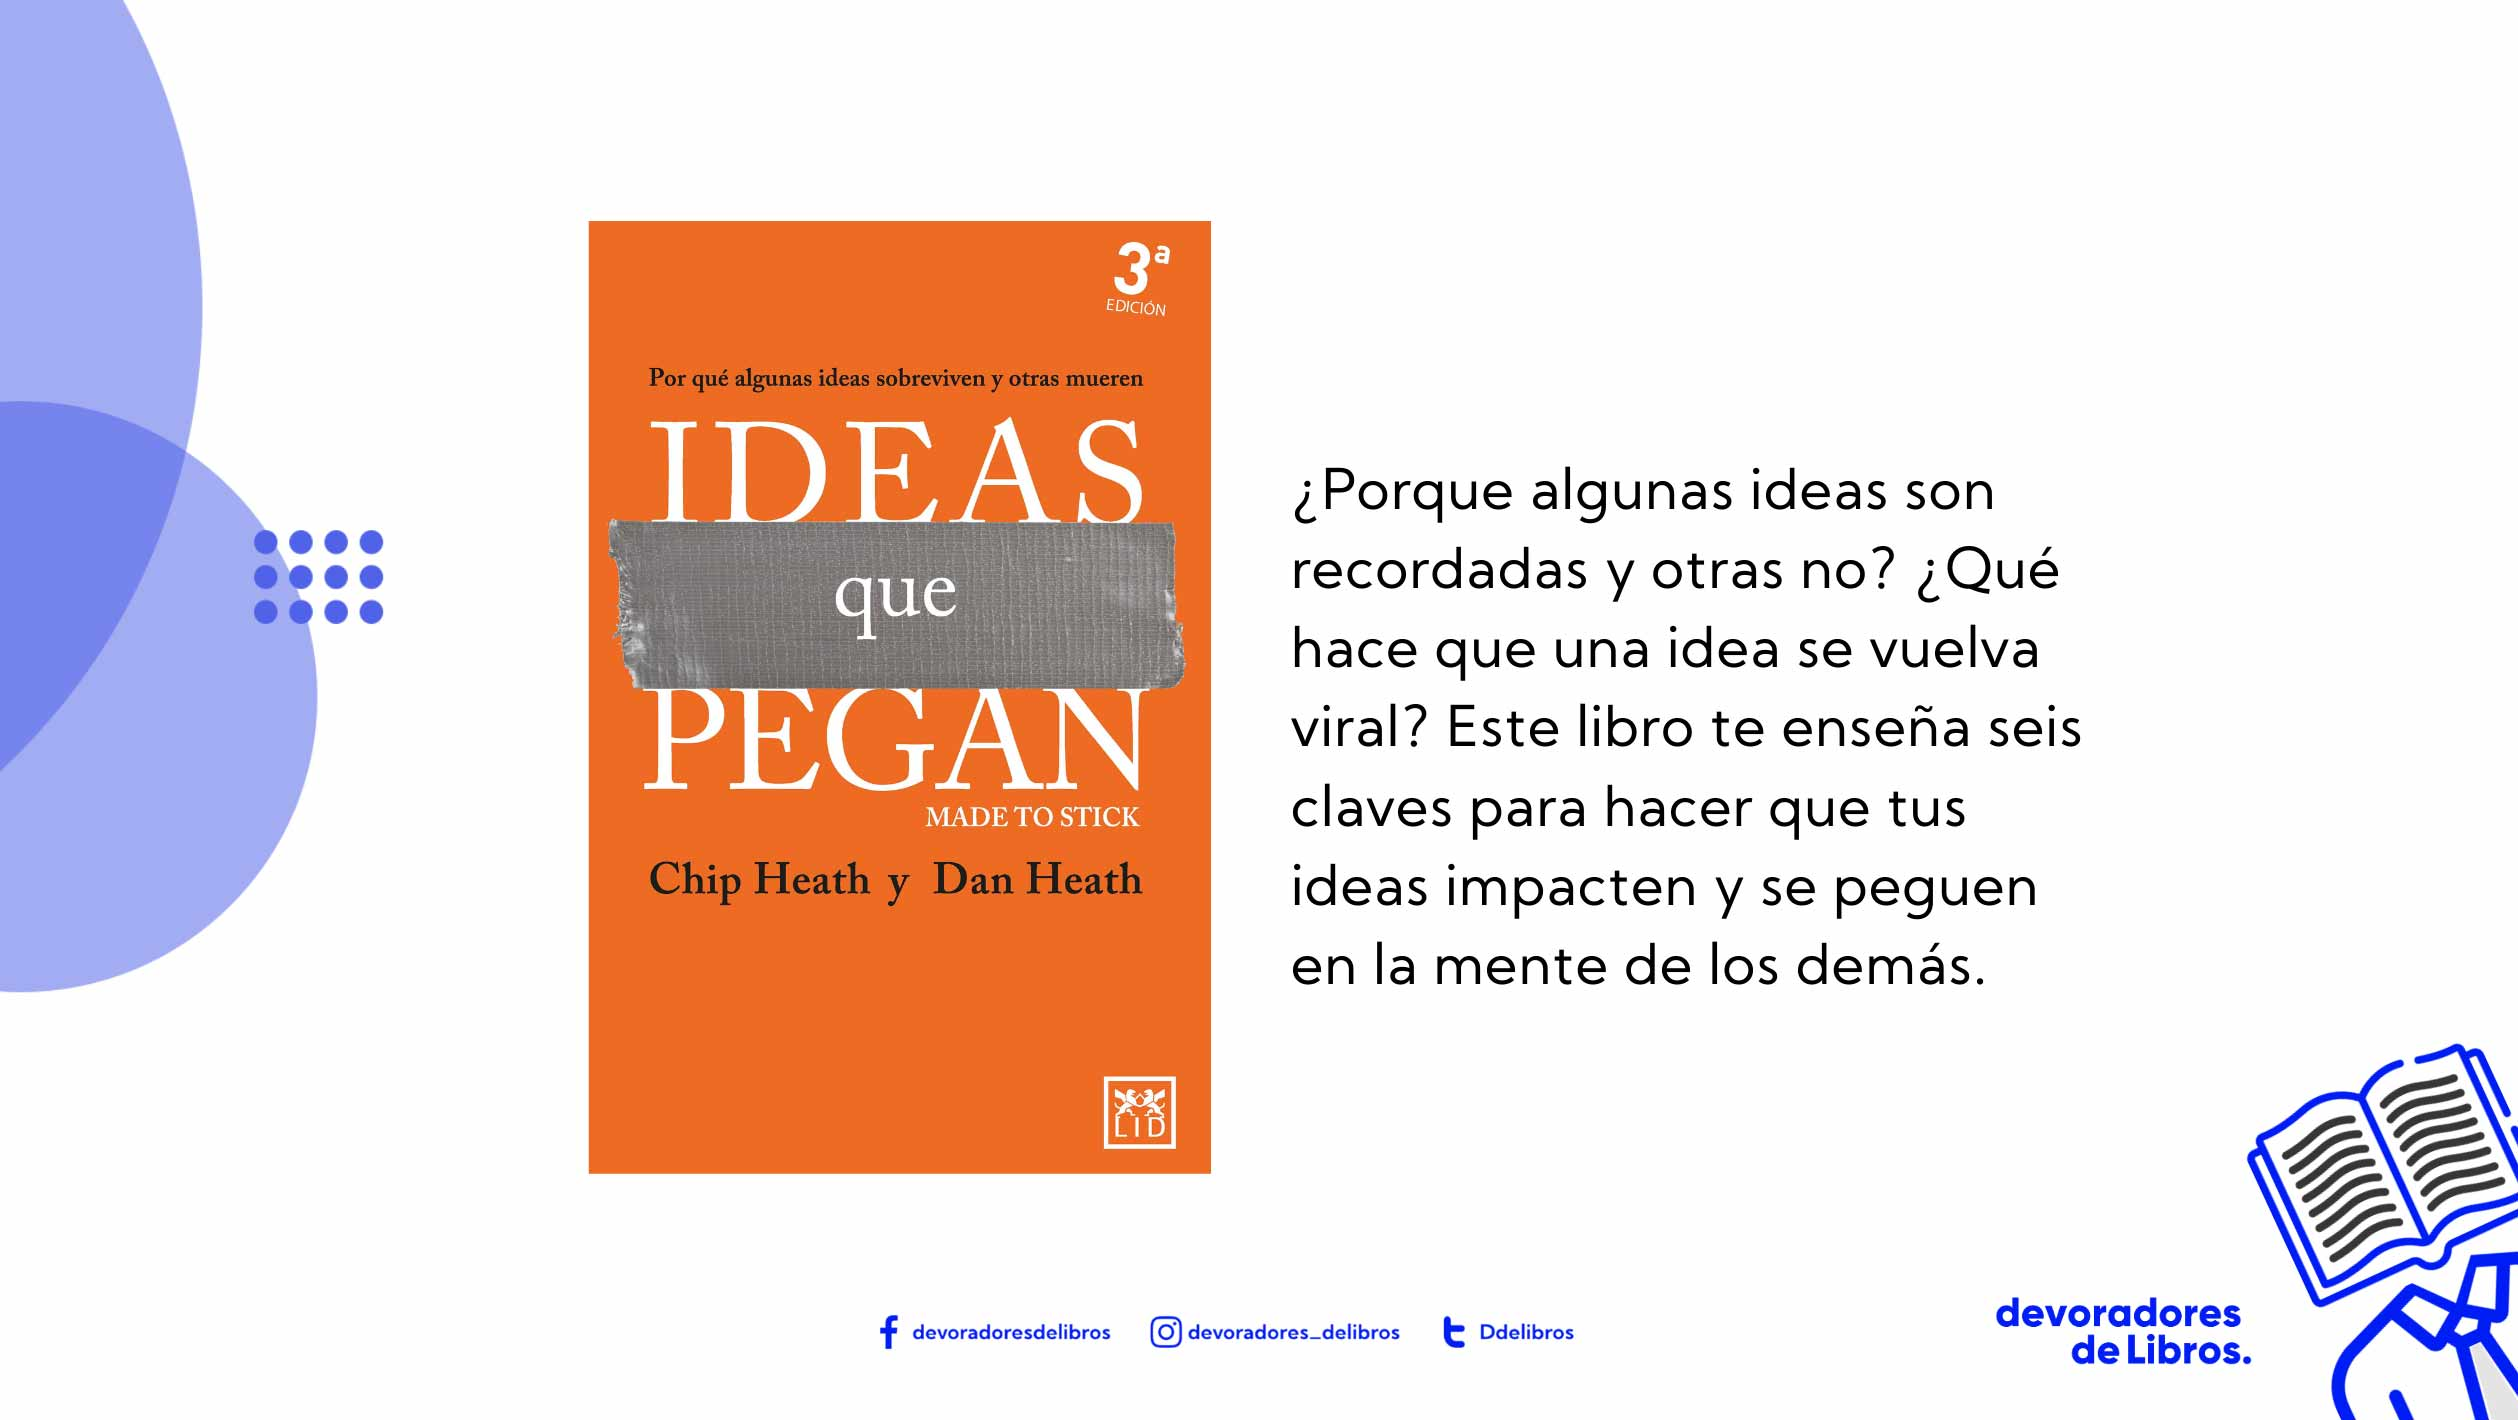 foto del libro ideas que pegan de Chip Heath y Dan heath